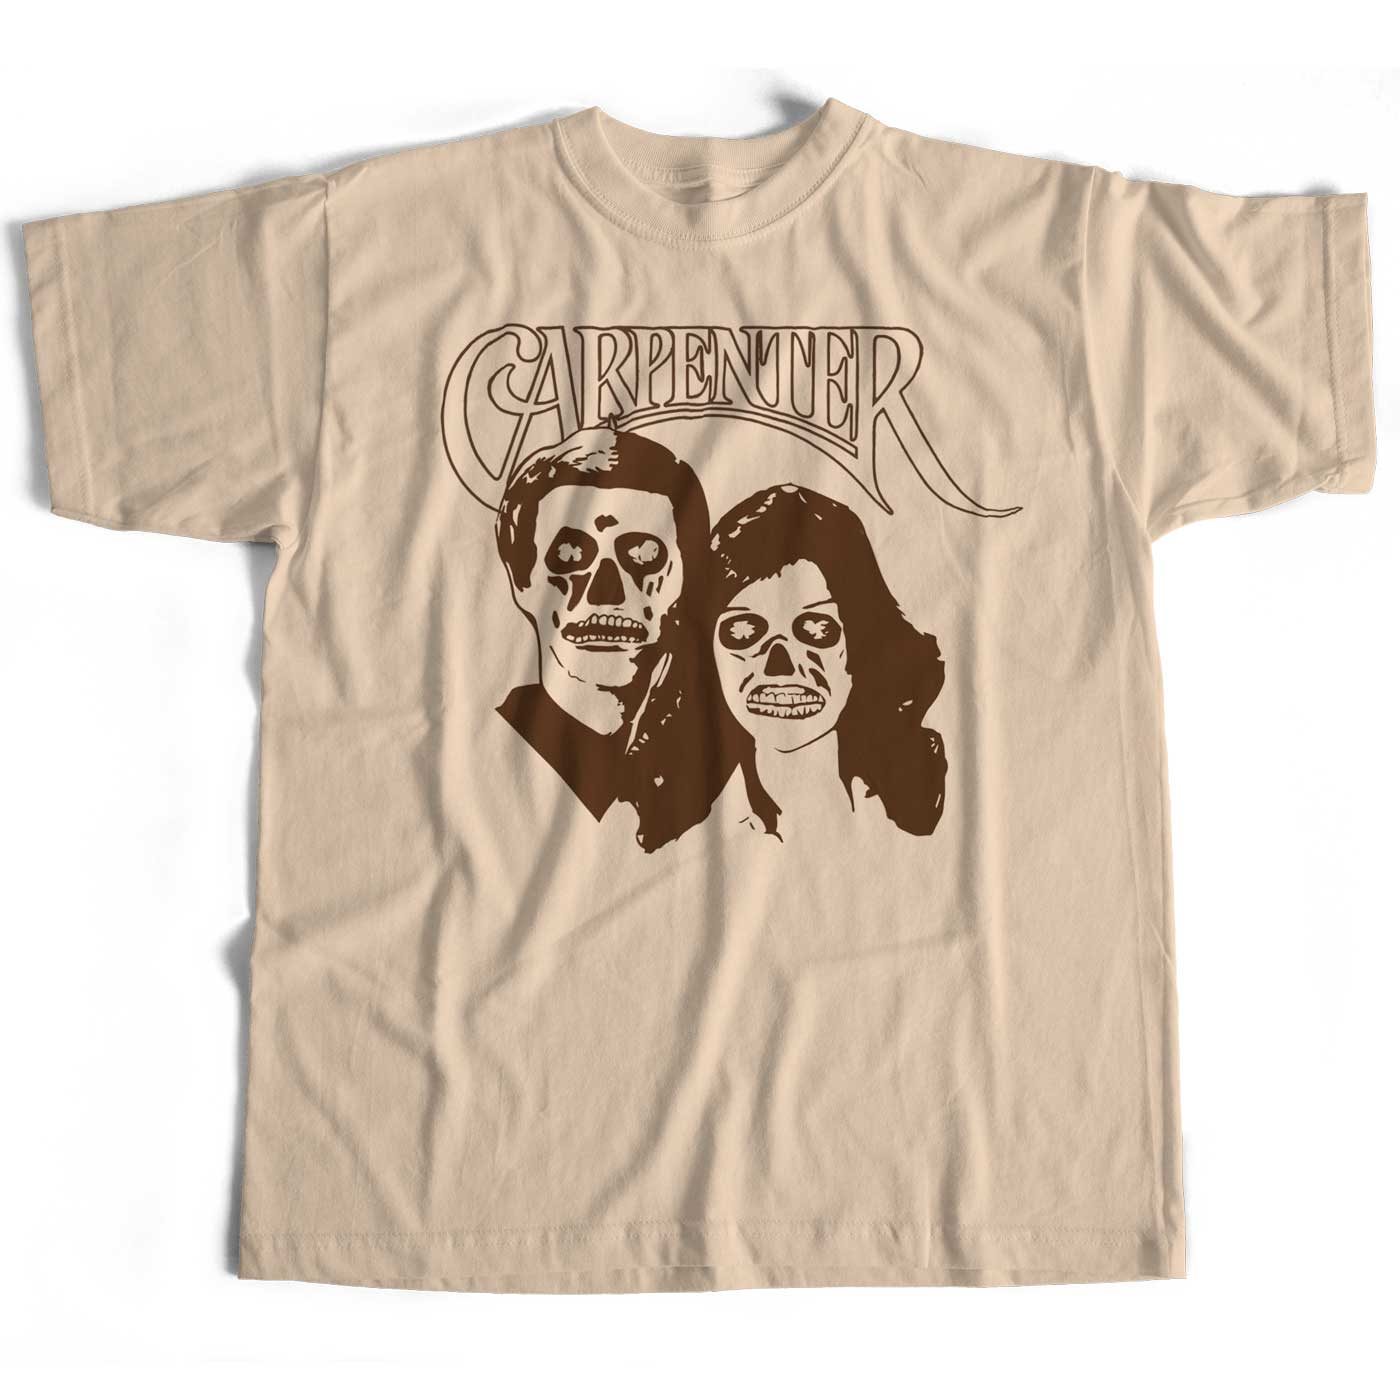 9e4c9ee8 Carpenter They Live T shirt - An Easy Listening Cult Sci-Fi Movie Design